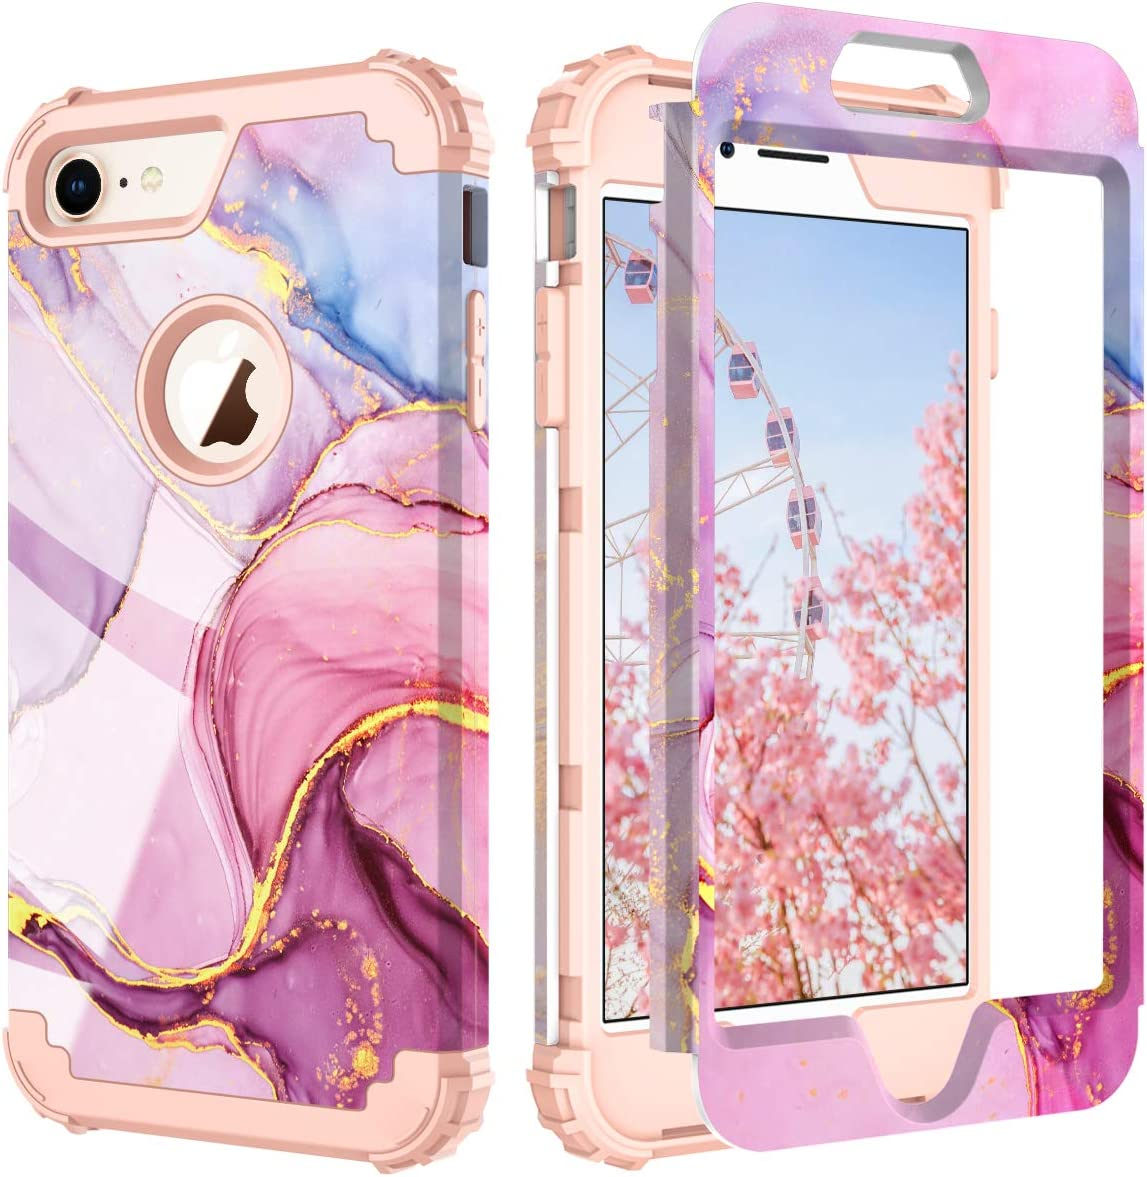 PIXIU Compatible with iPhone 8 Case/iPhone 7 case,Three Layer Heavy Duty Hybrid Sturdy Armor Shockproof Protective Phone Cover Cases for Apple iPhone 8 and iPhone 7(Marble)